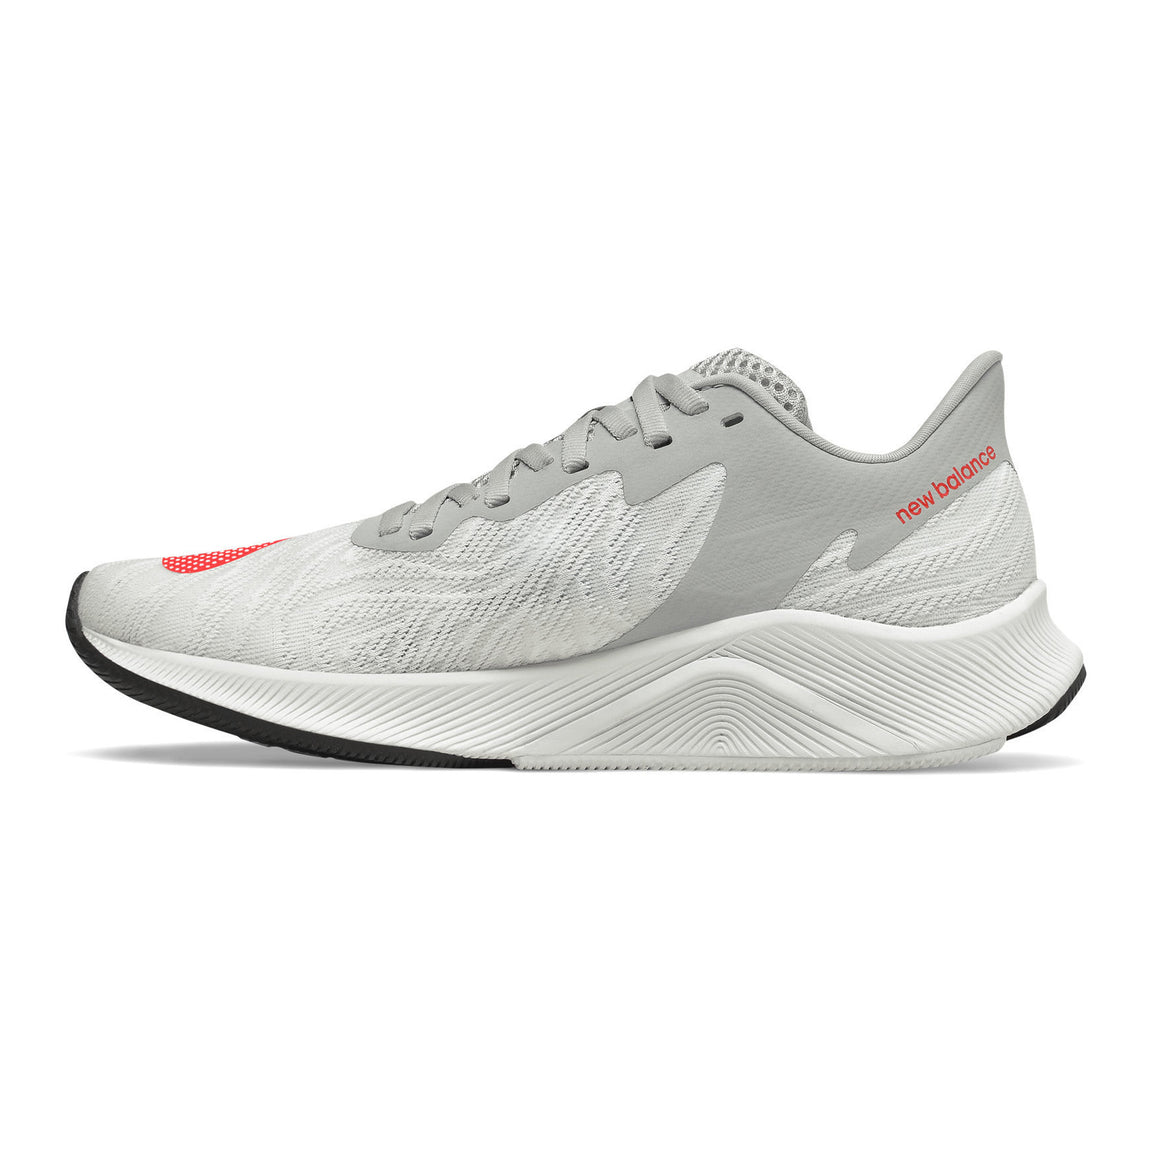 FuelCell Prism EnergyStreak Running Shoe for Women in White with Neo Flame